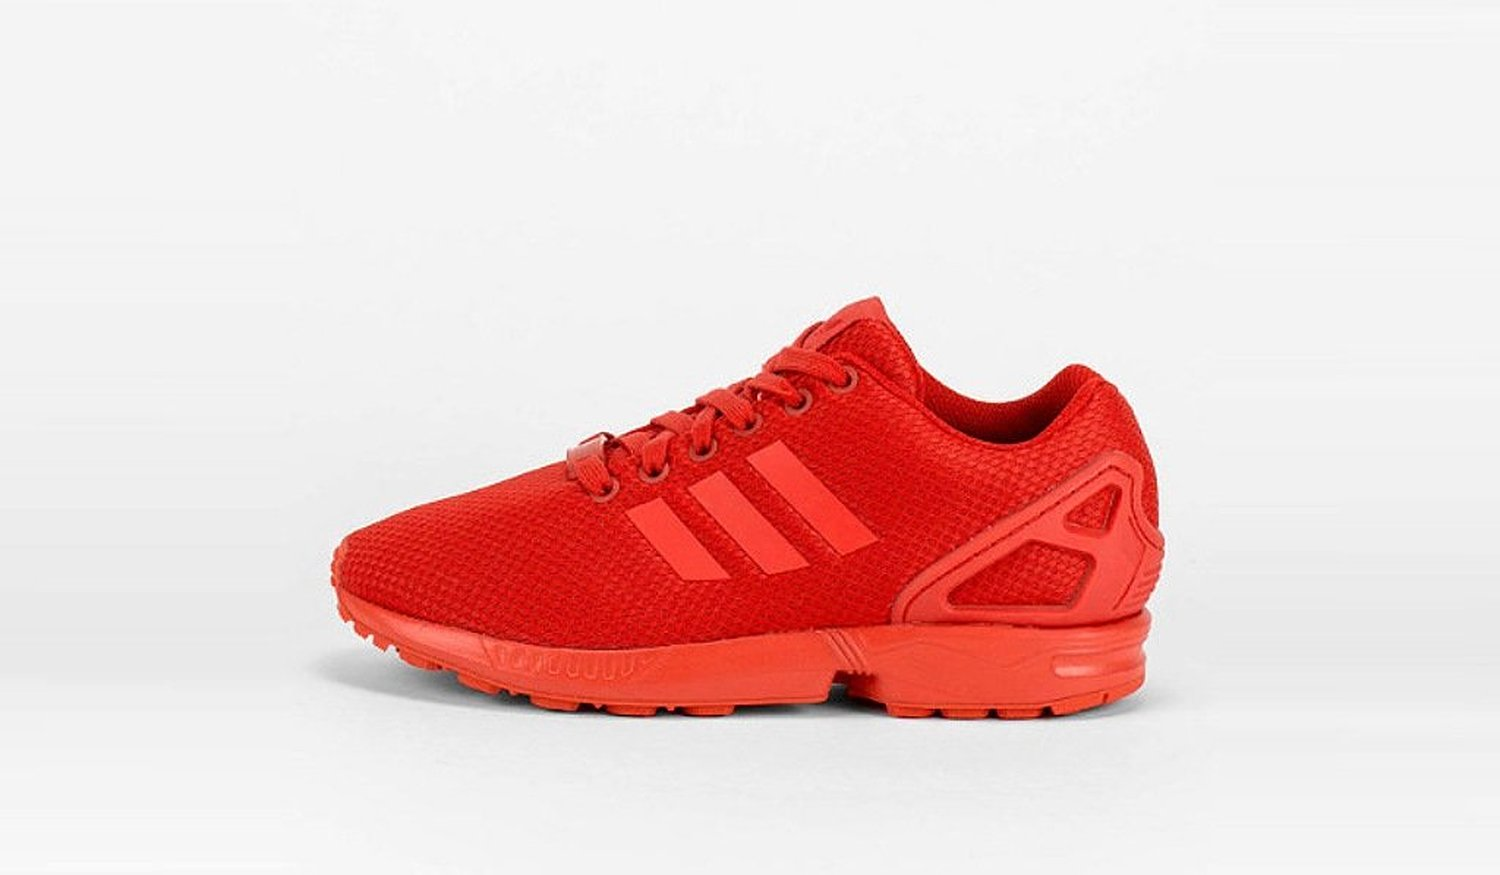 Adidas Flux Red October